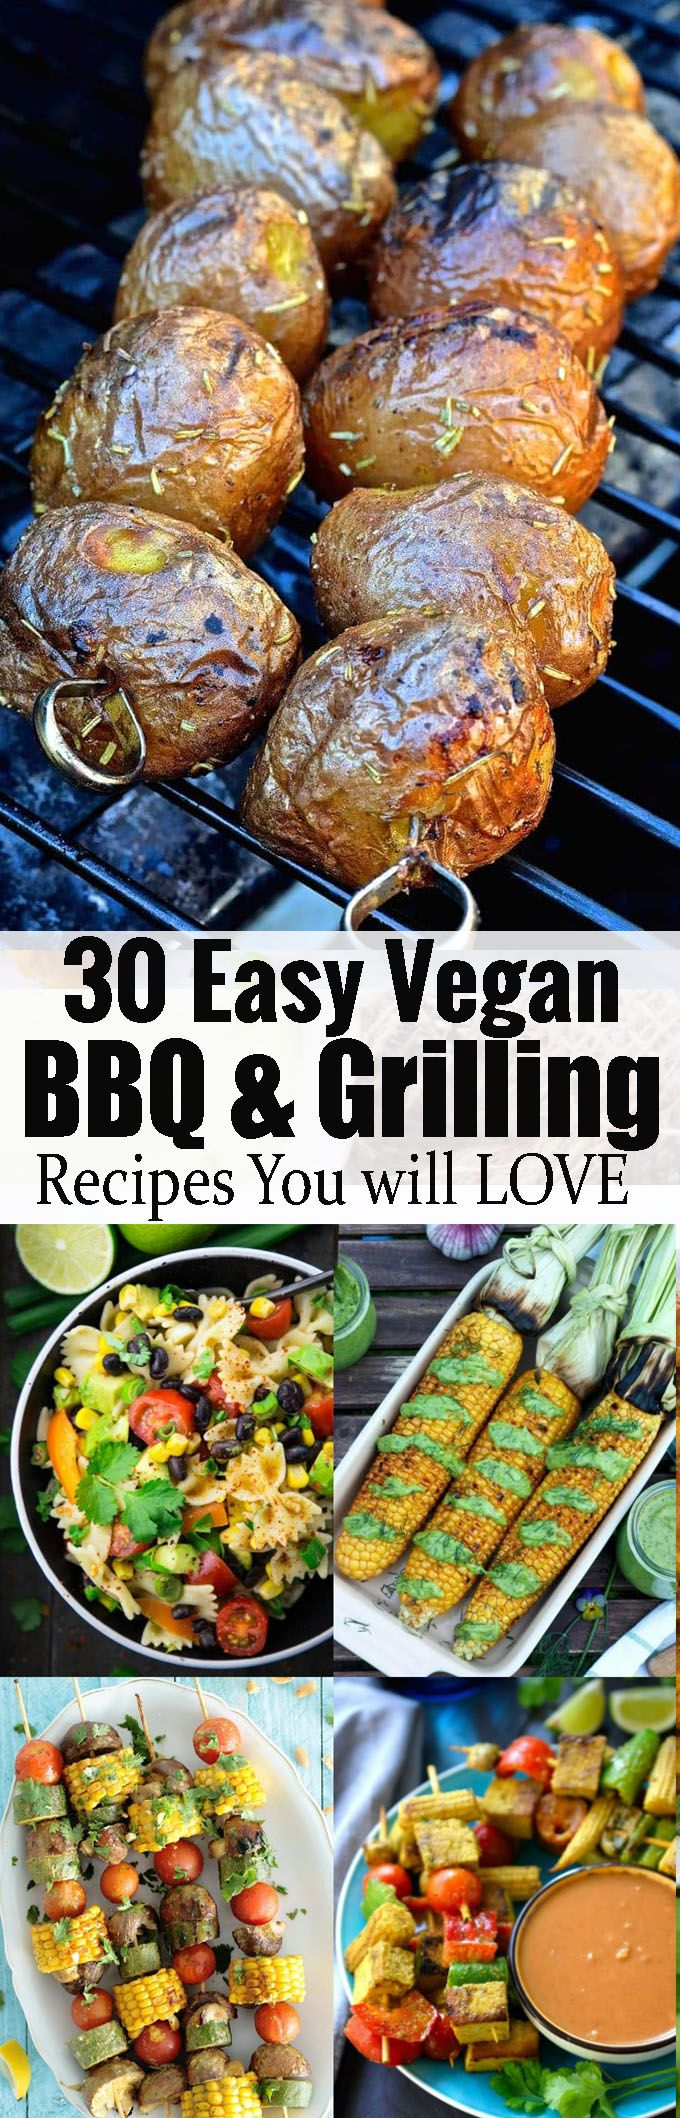 30 vegan BBQ and grilling recipes that will impress veggies and meat-eaters alike! As a vegan you definitely don't have to miss out on the BBQ season! <3 | veganheaven.org